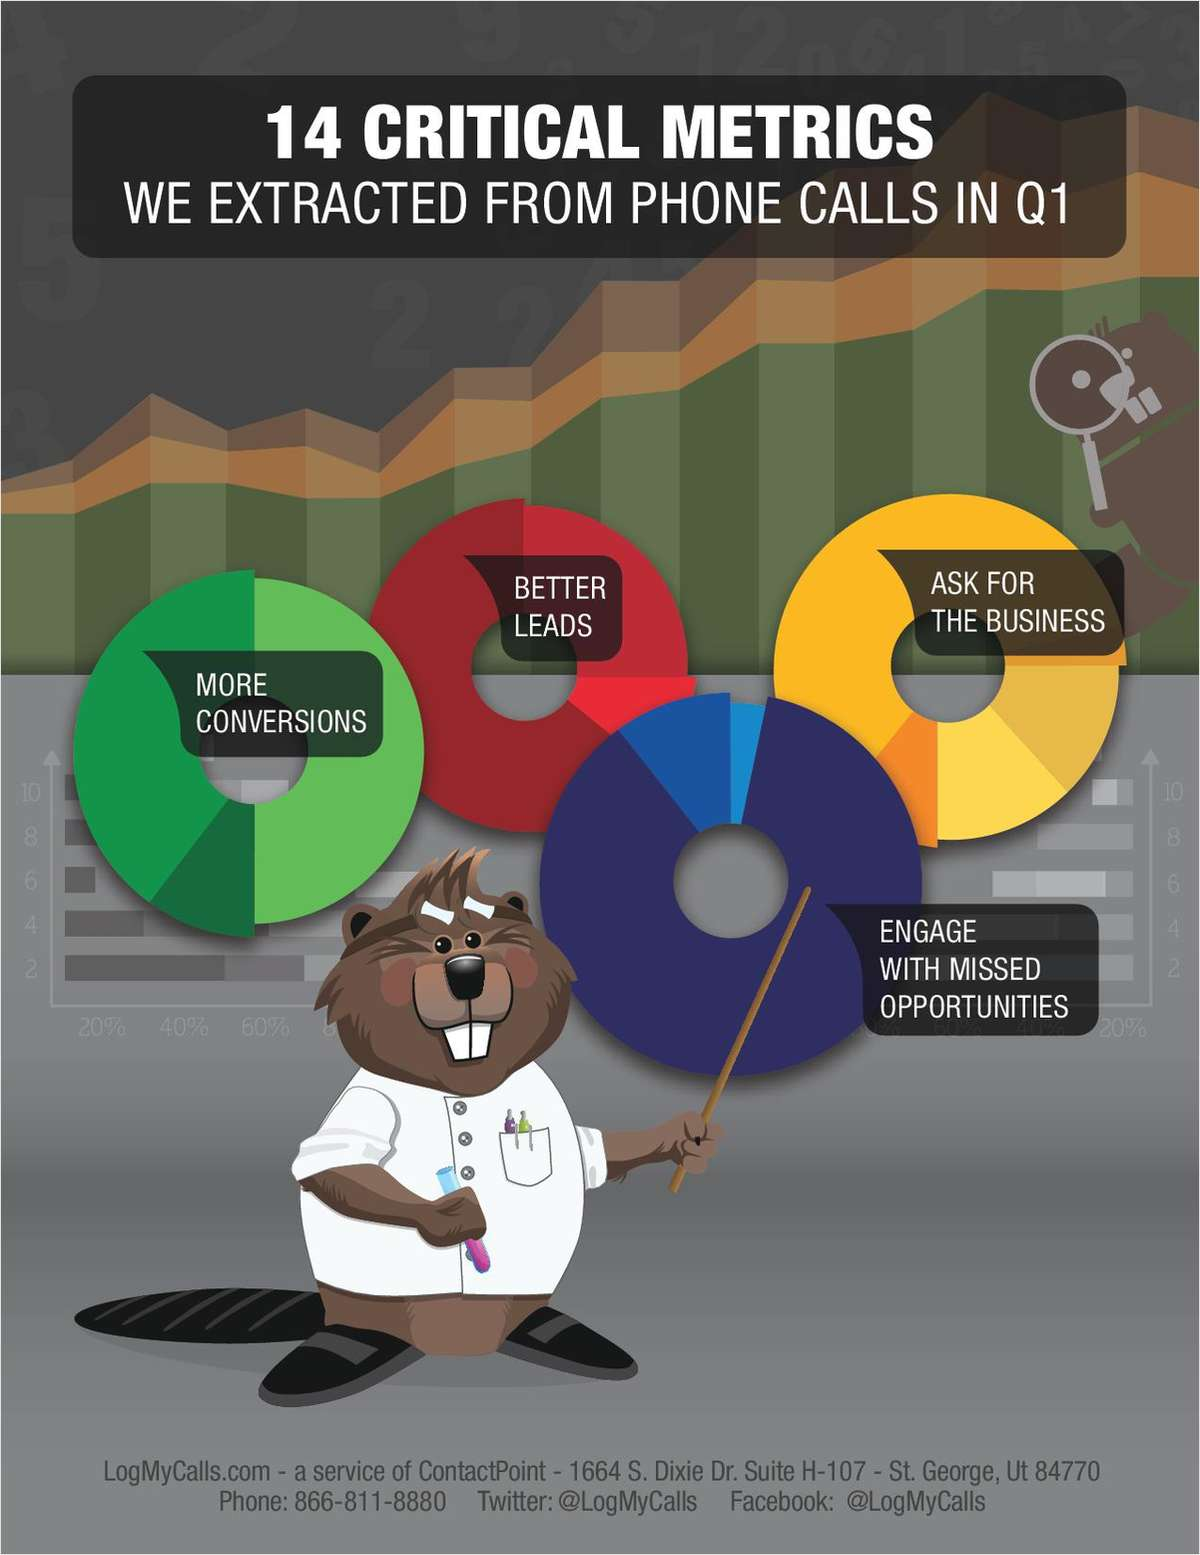 14 Critical Metrics We Extracted from Phone Calls in Q1